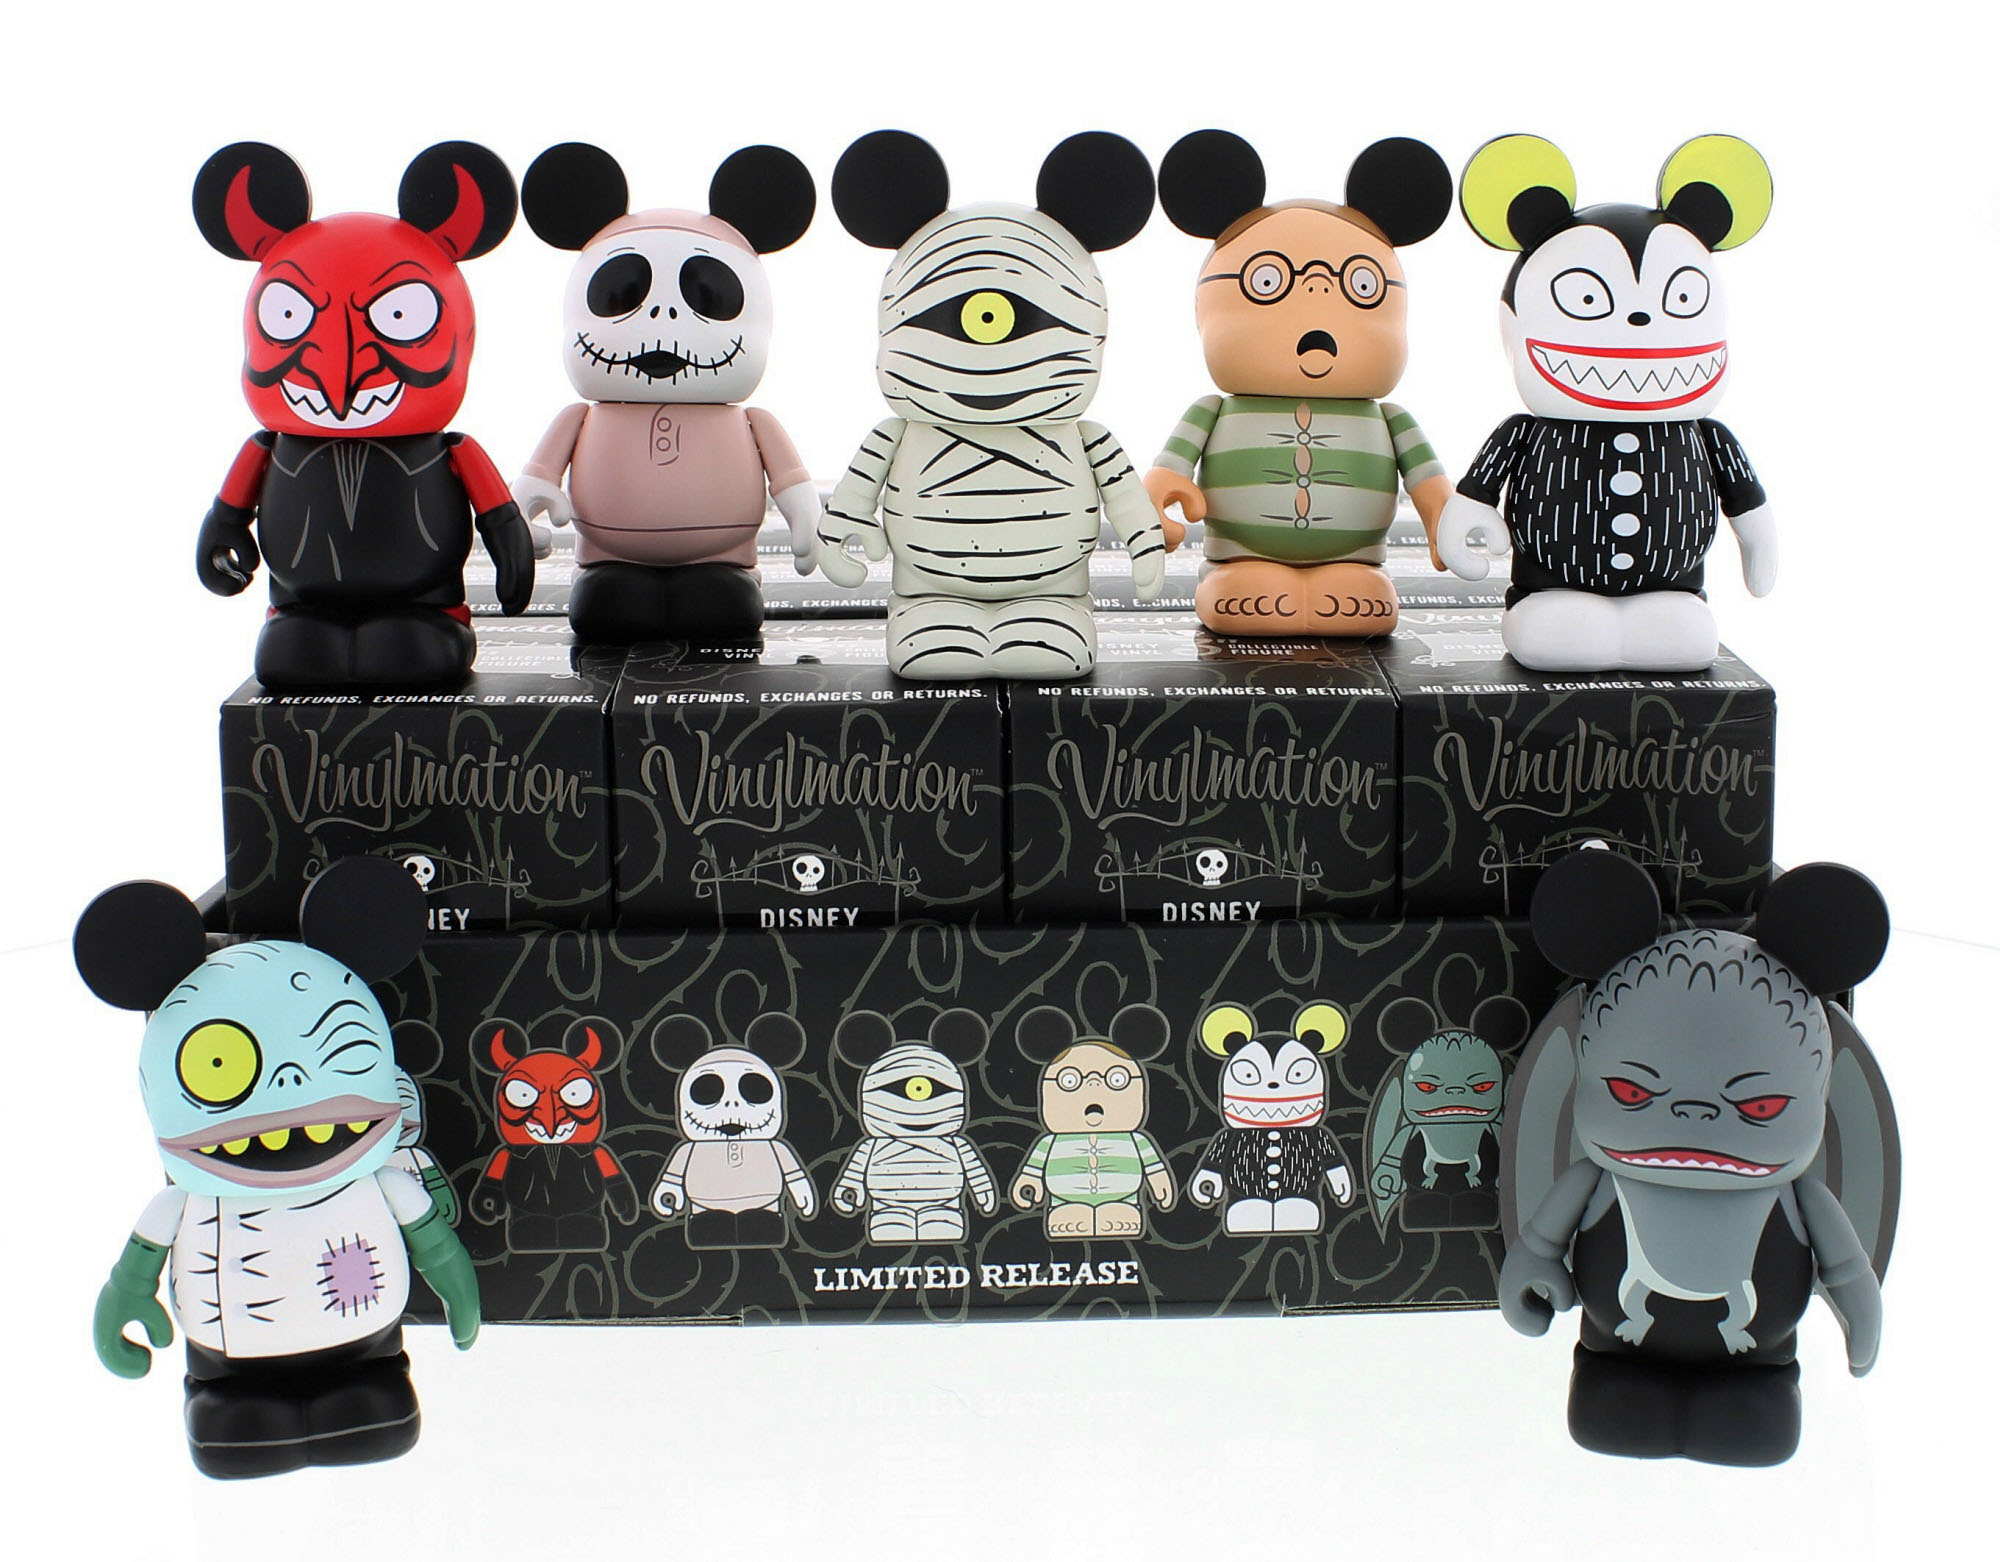 Nightmare Before Christmas Archives - Vinylmation Kingdom